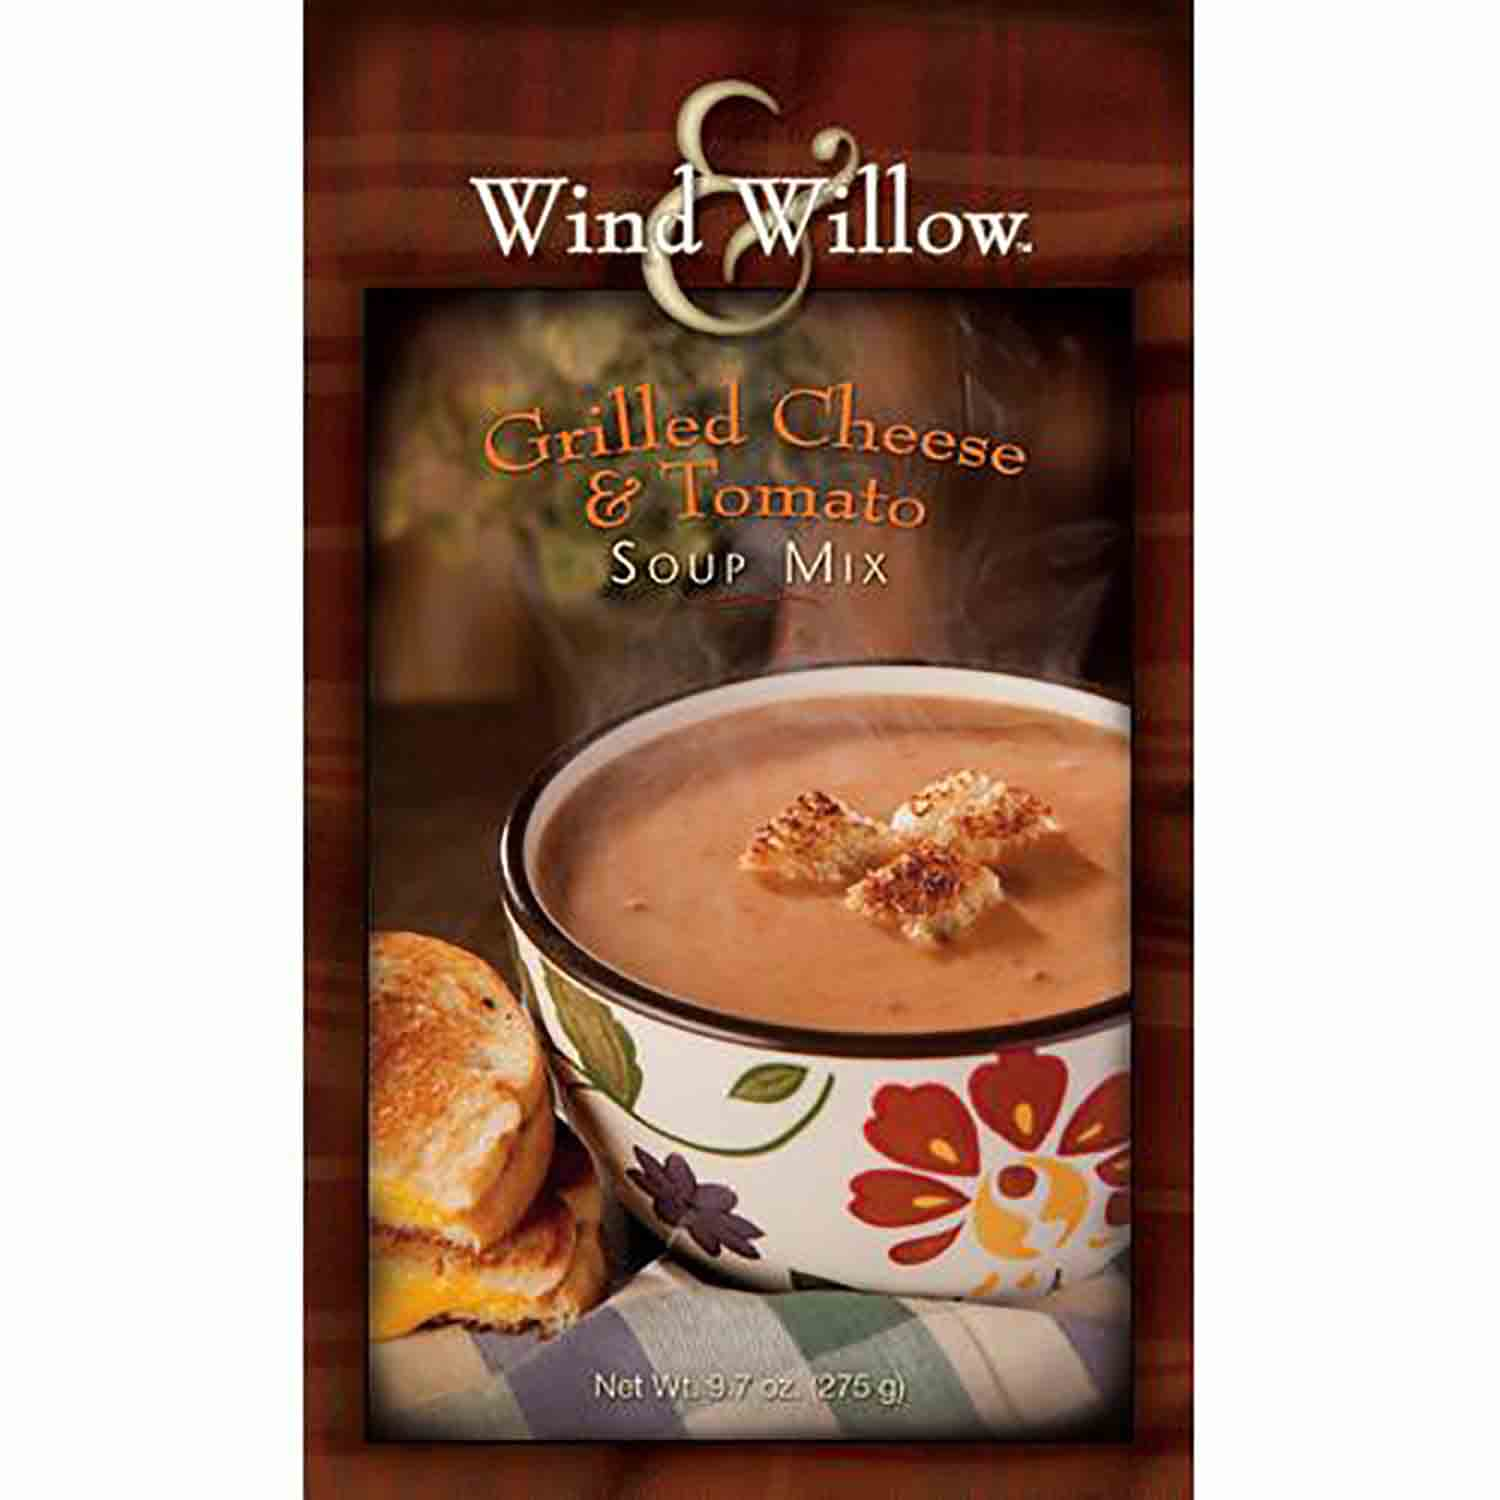 Grilled Cheese & Tomato Wind and Willow Soup Mix